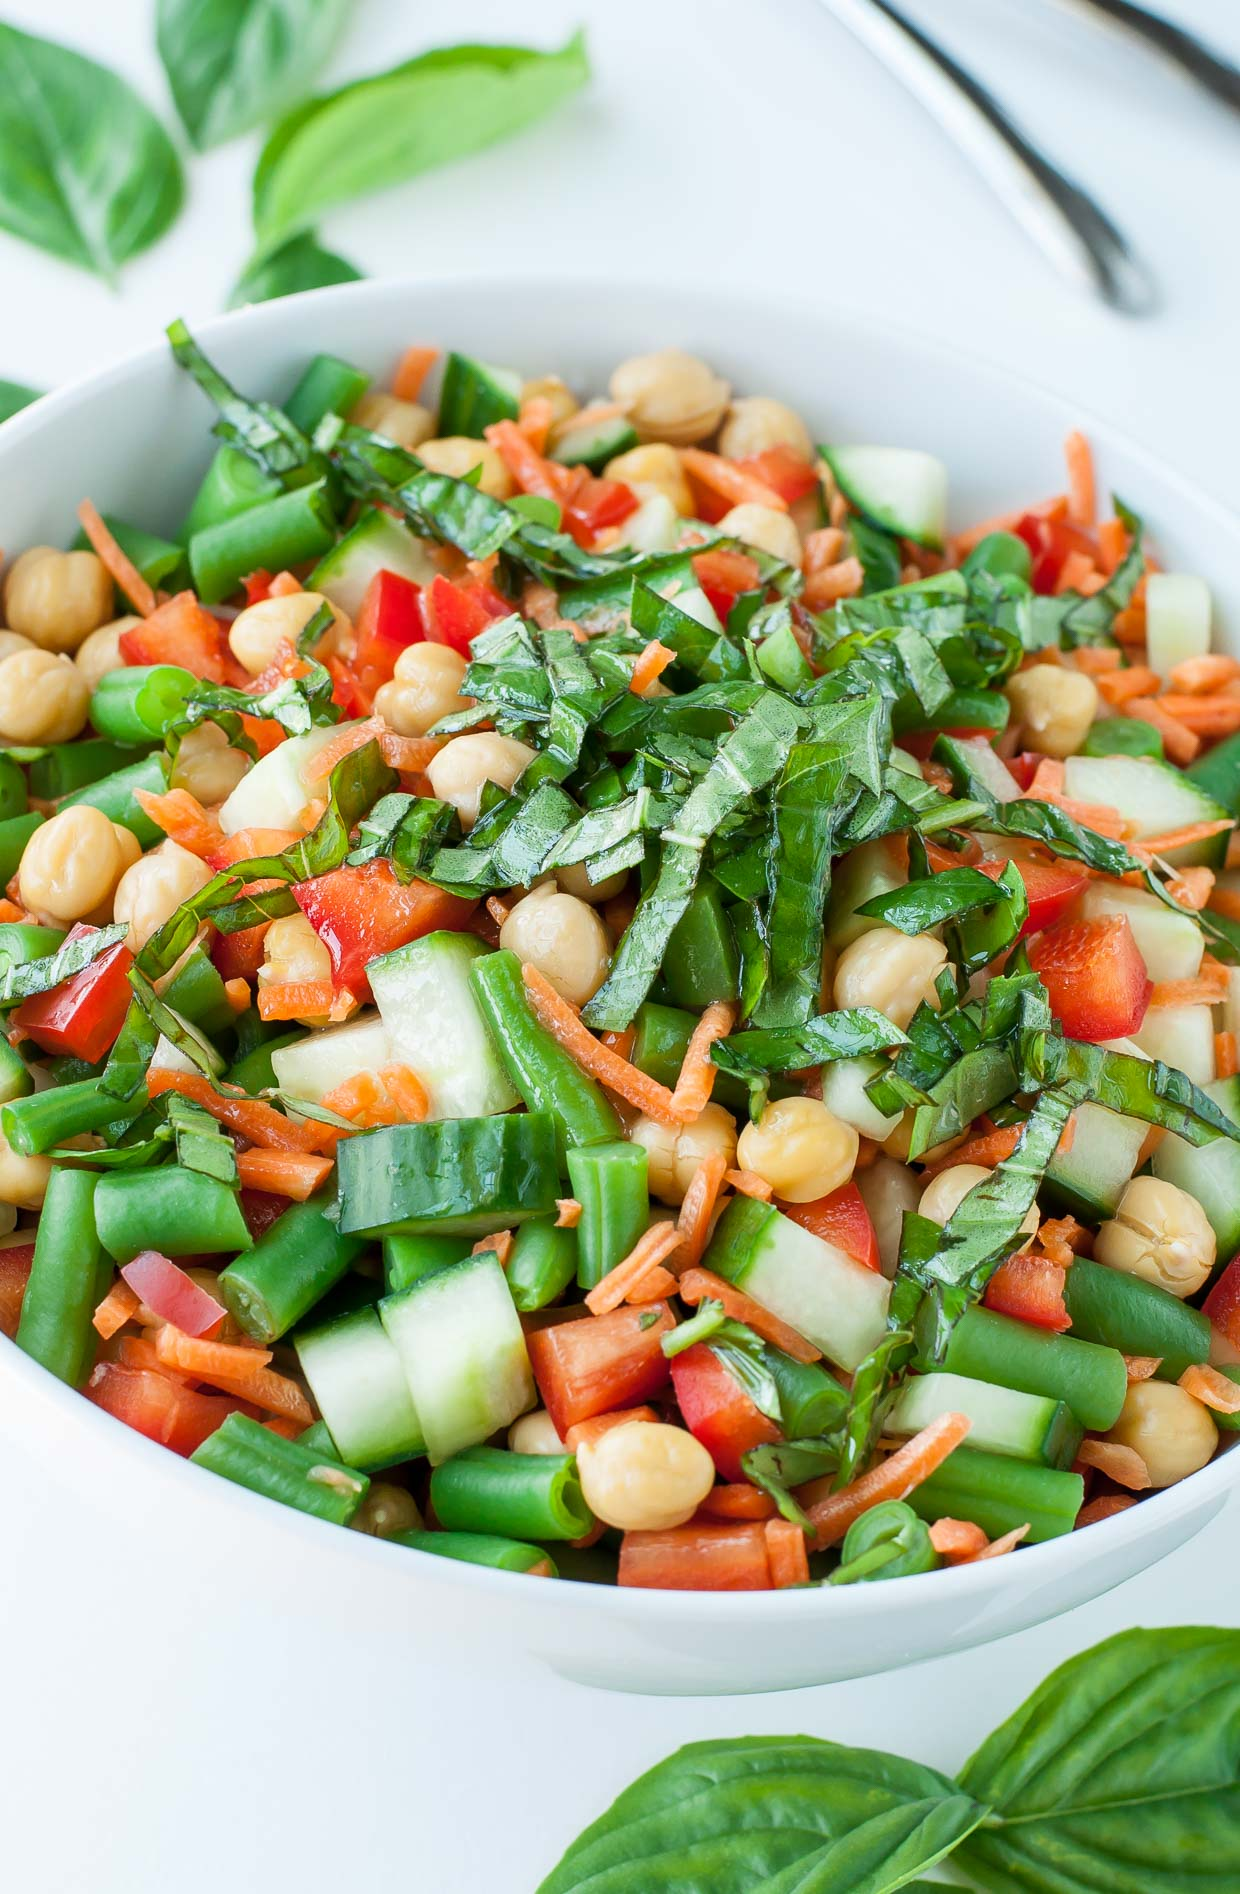 We're nuts about this Chickpea Chopped Salad with Basil Vinaigrette Dressing! Quick, easy, and oh so delicious, this veggie-packed salad is ready to rock your Summer. V + GF